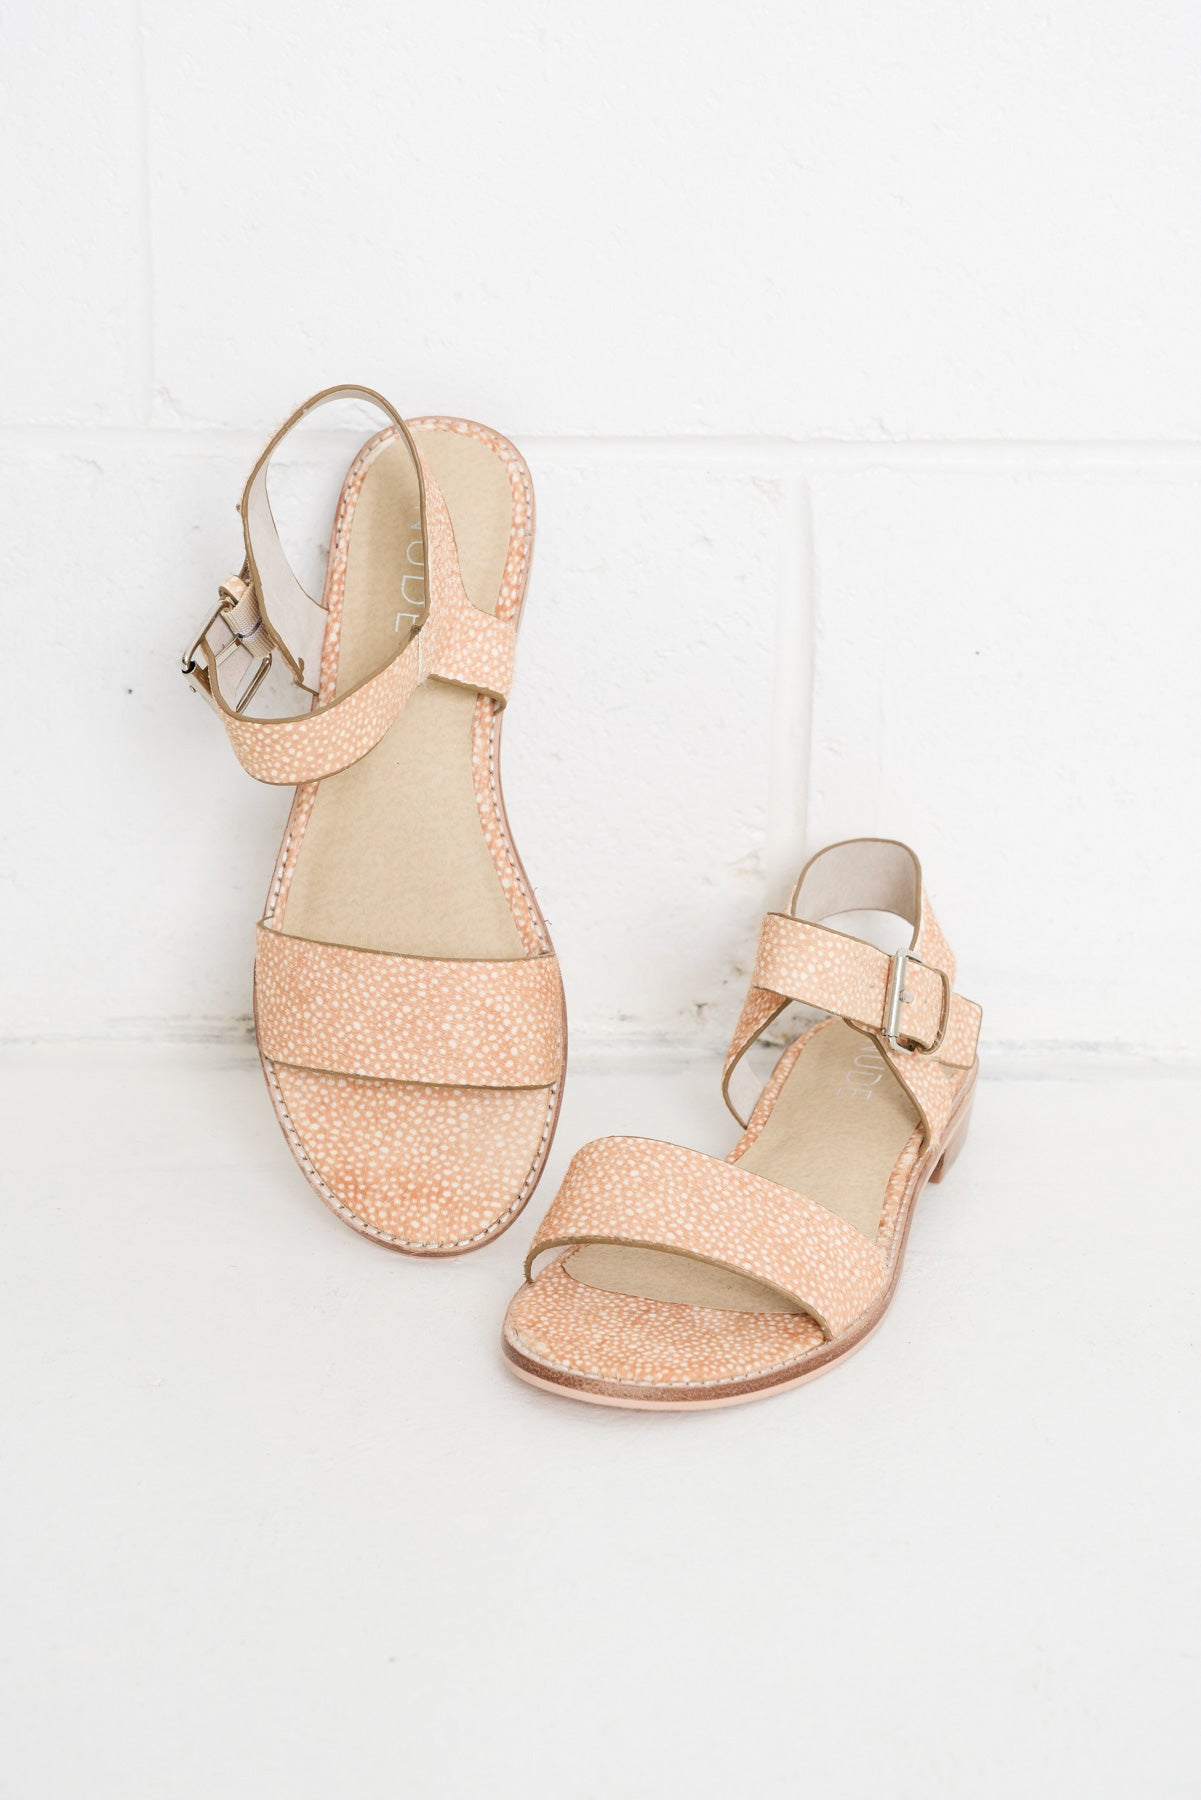 Tallow Honey Spot Sandals - Blue Bungalow